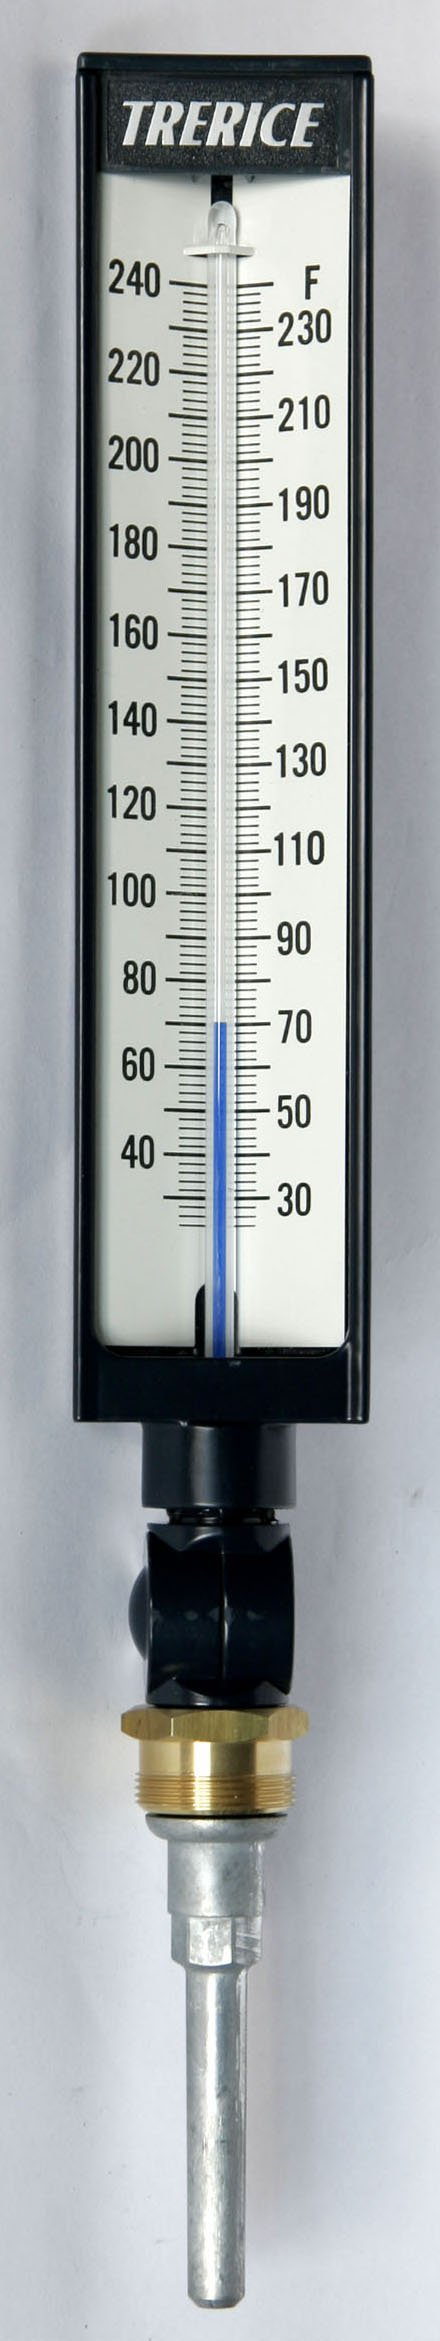 Trerice - BX Thermometer